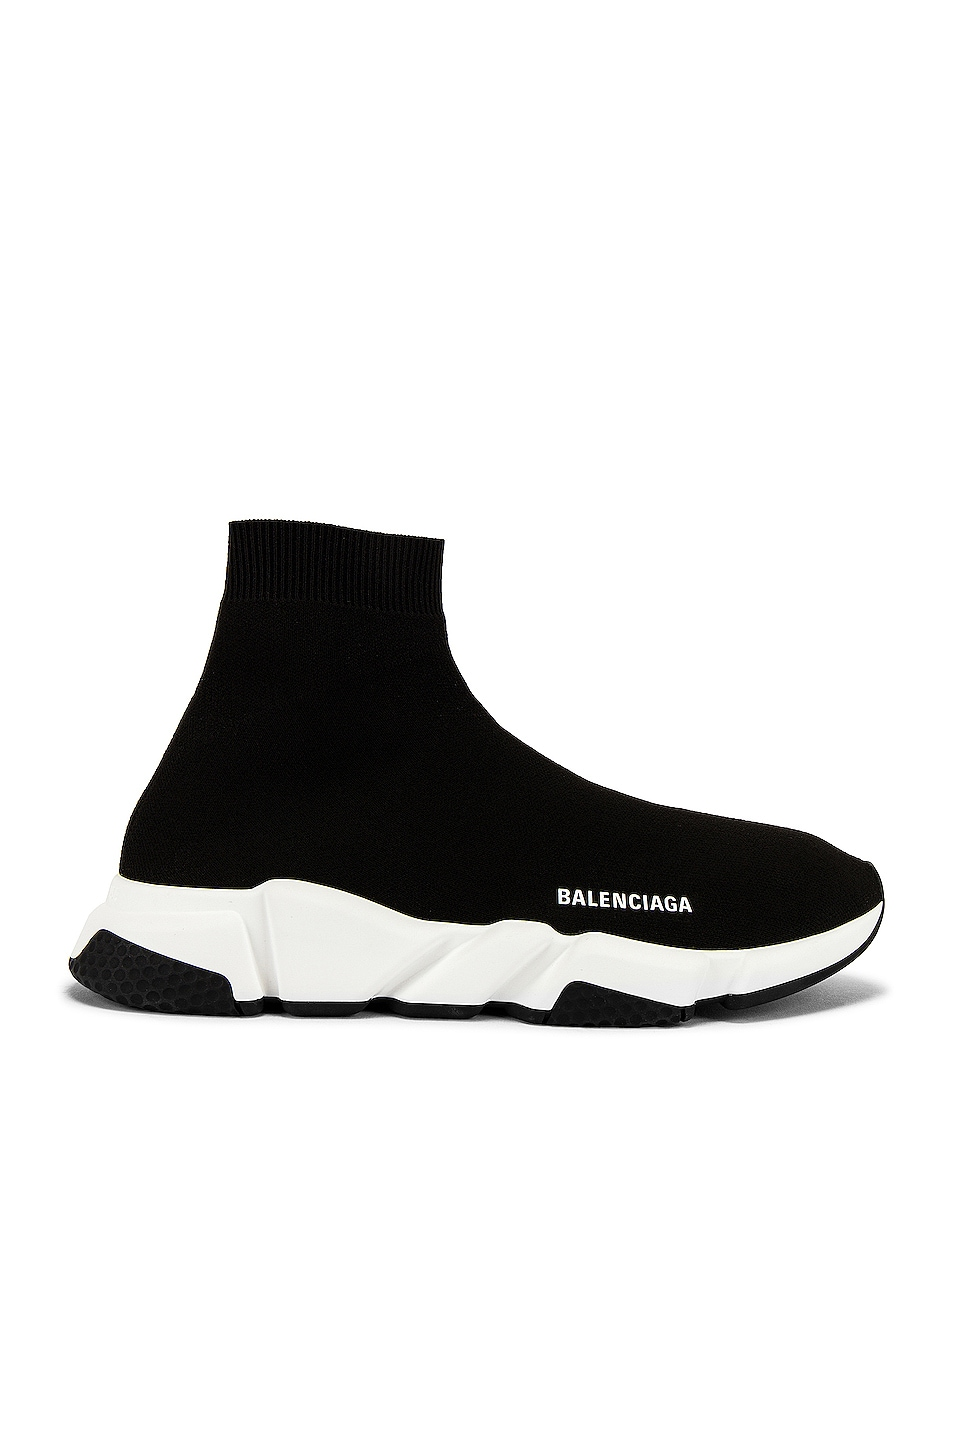 Balenciaga Knits Speed Light Knit Sneaker